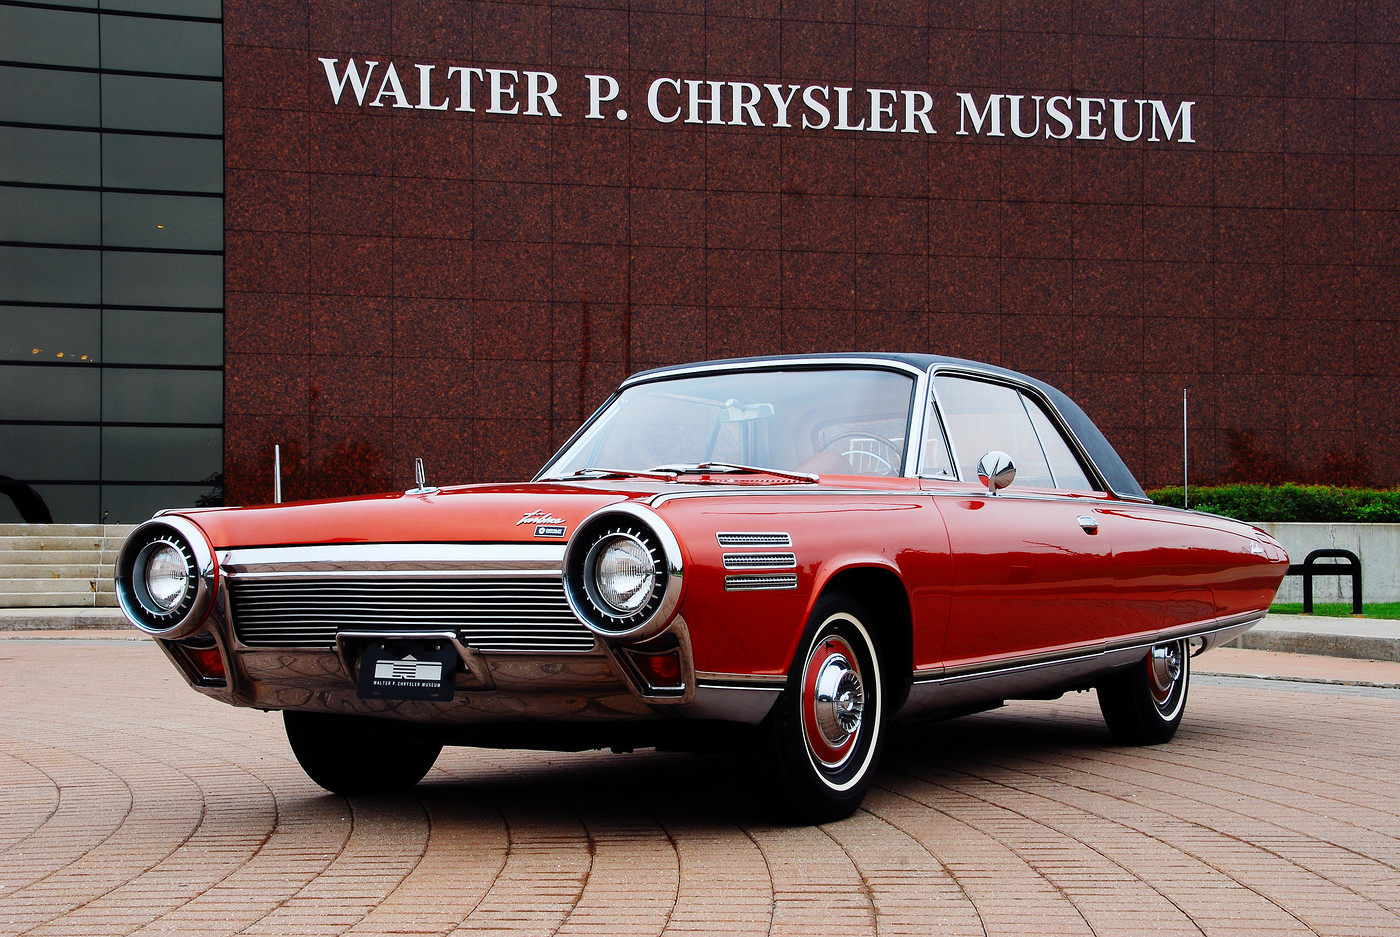 02 1963 Chrysler Ghia Turbine Car front three-quarter view at WP Chrysler Museum